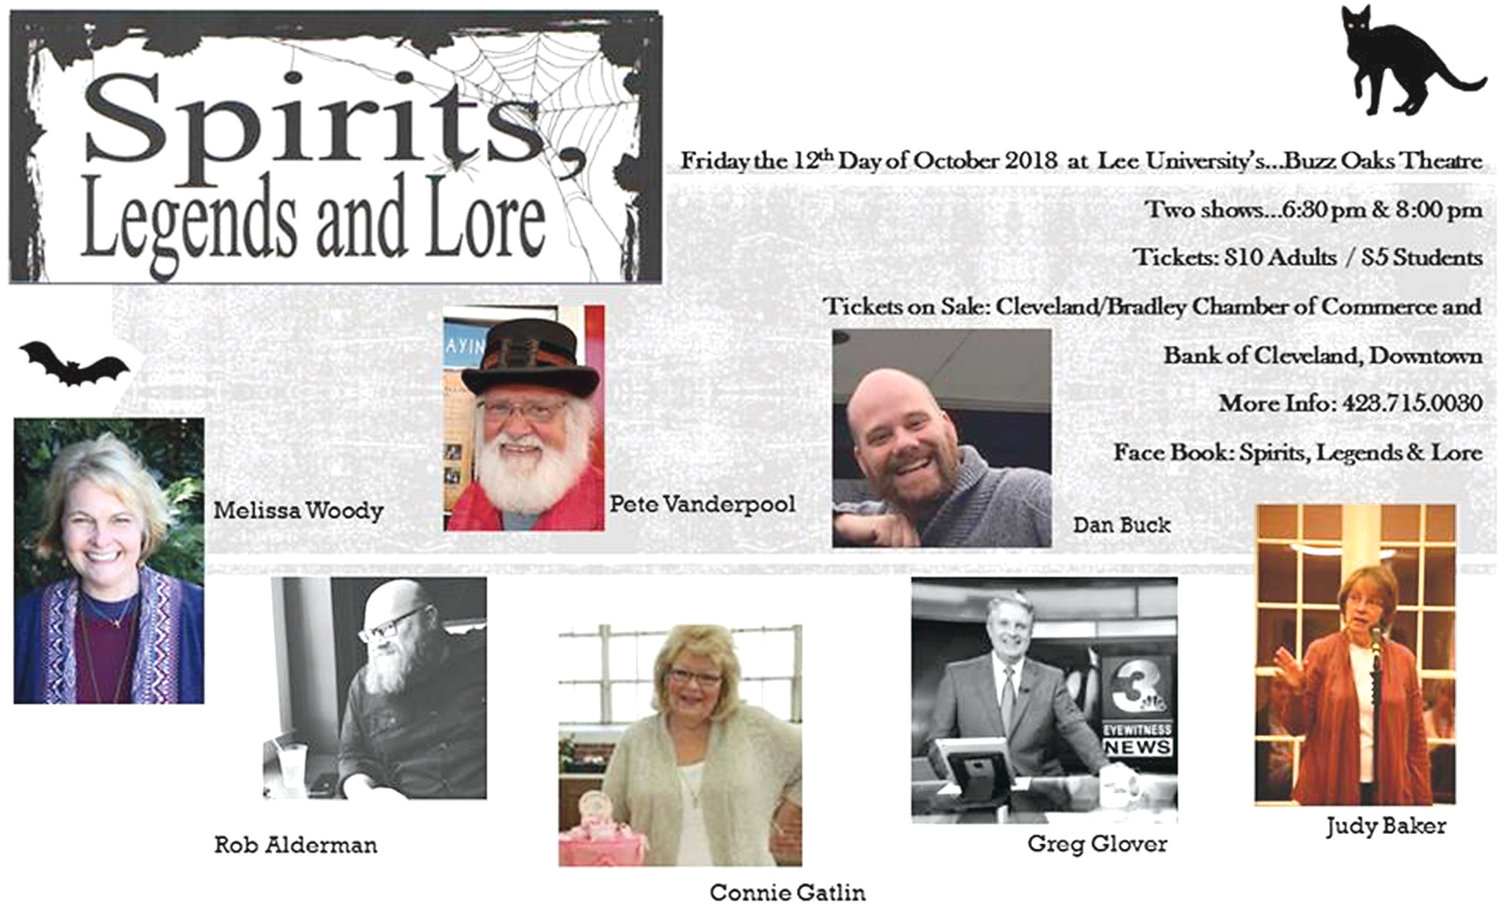 HAUNTED TALES AND GOOD fun are to be had at the Spirits, Legends and Lore event on Friday, Oct. 12 at the Lee University's Buzz Oaks Theatre. Join in on the spooky fun to get in the Halloween spirit.